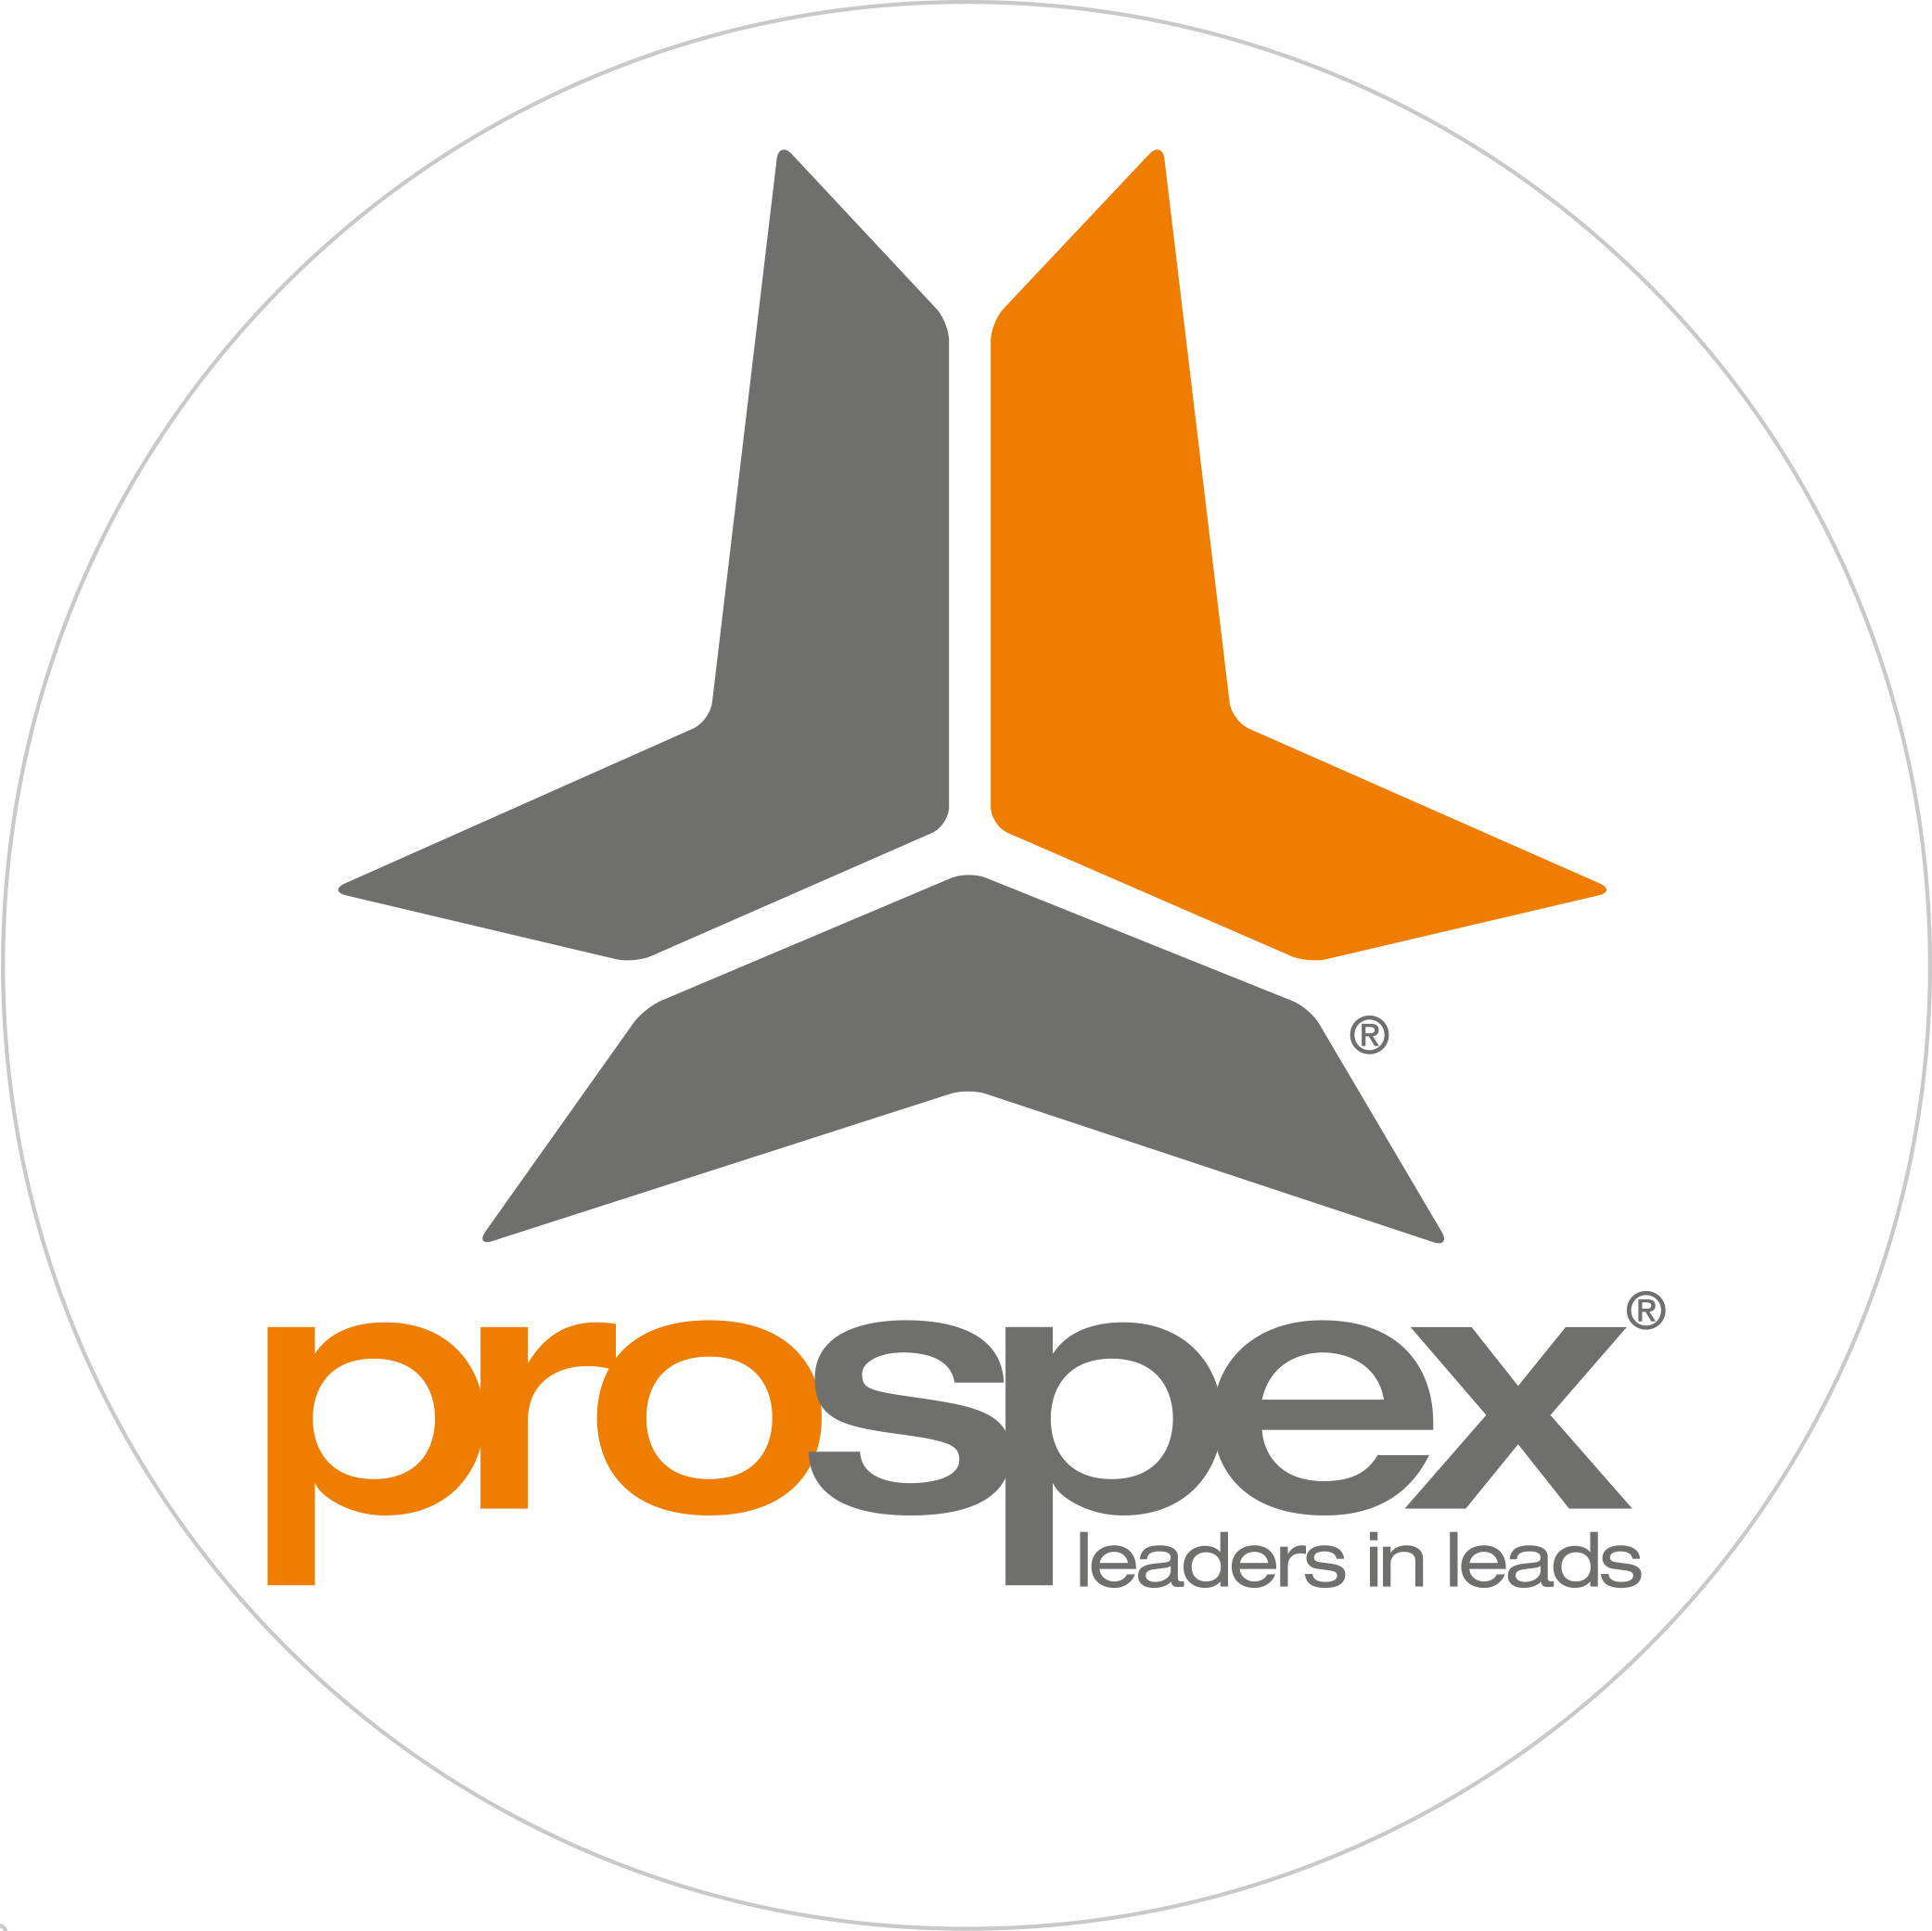 marketingprospex